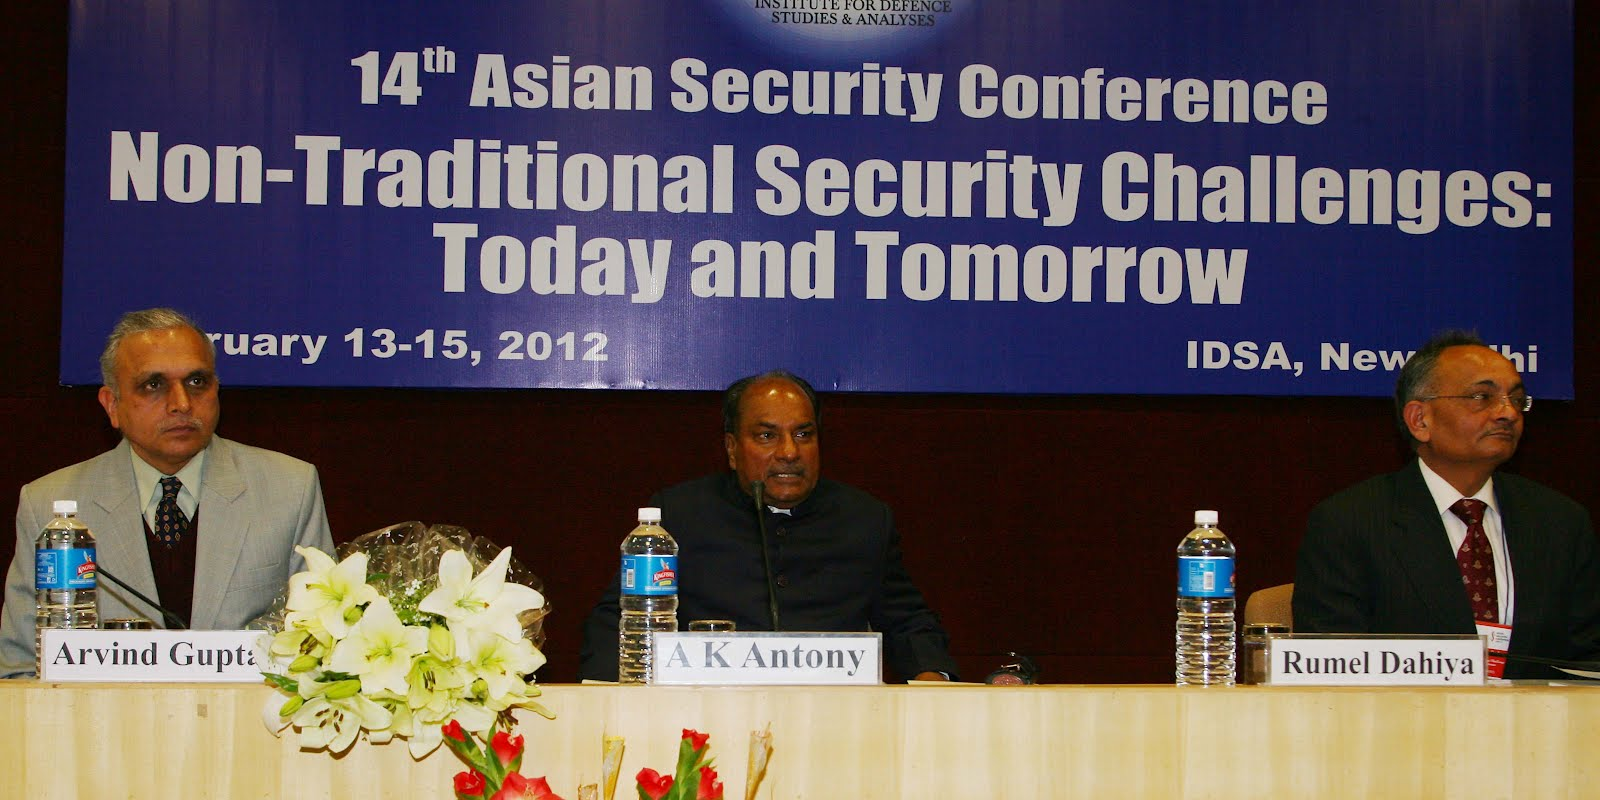 Right! asian port security conference that interrupt